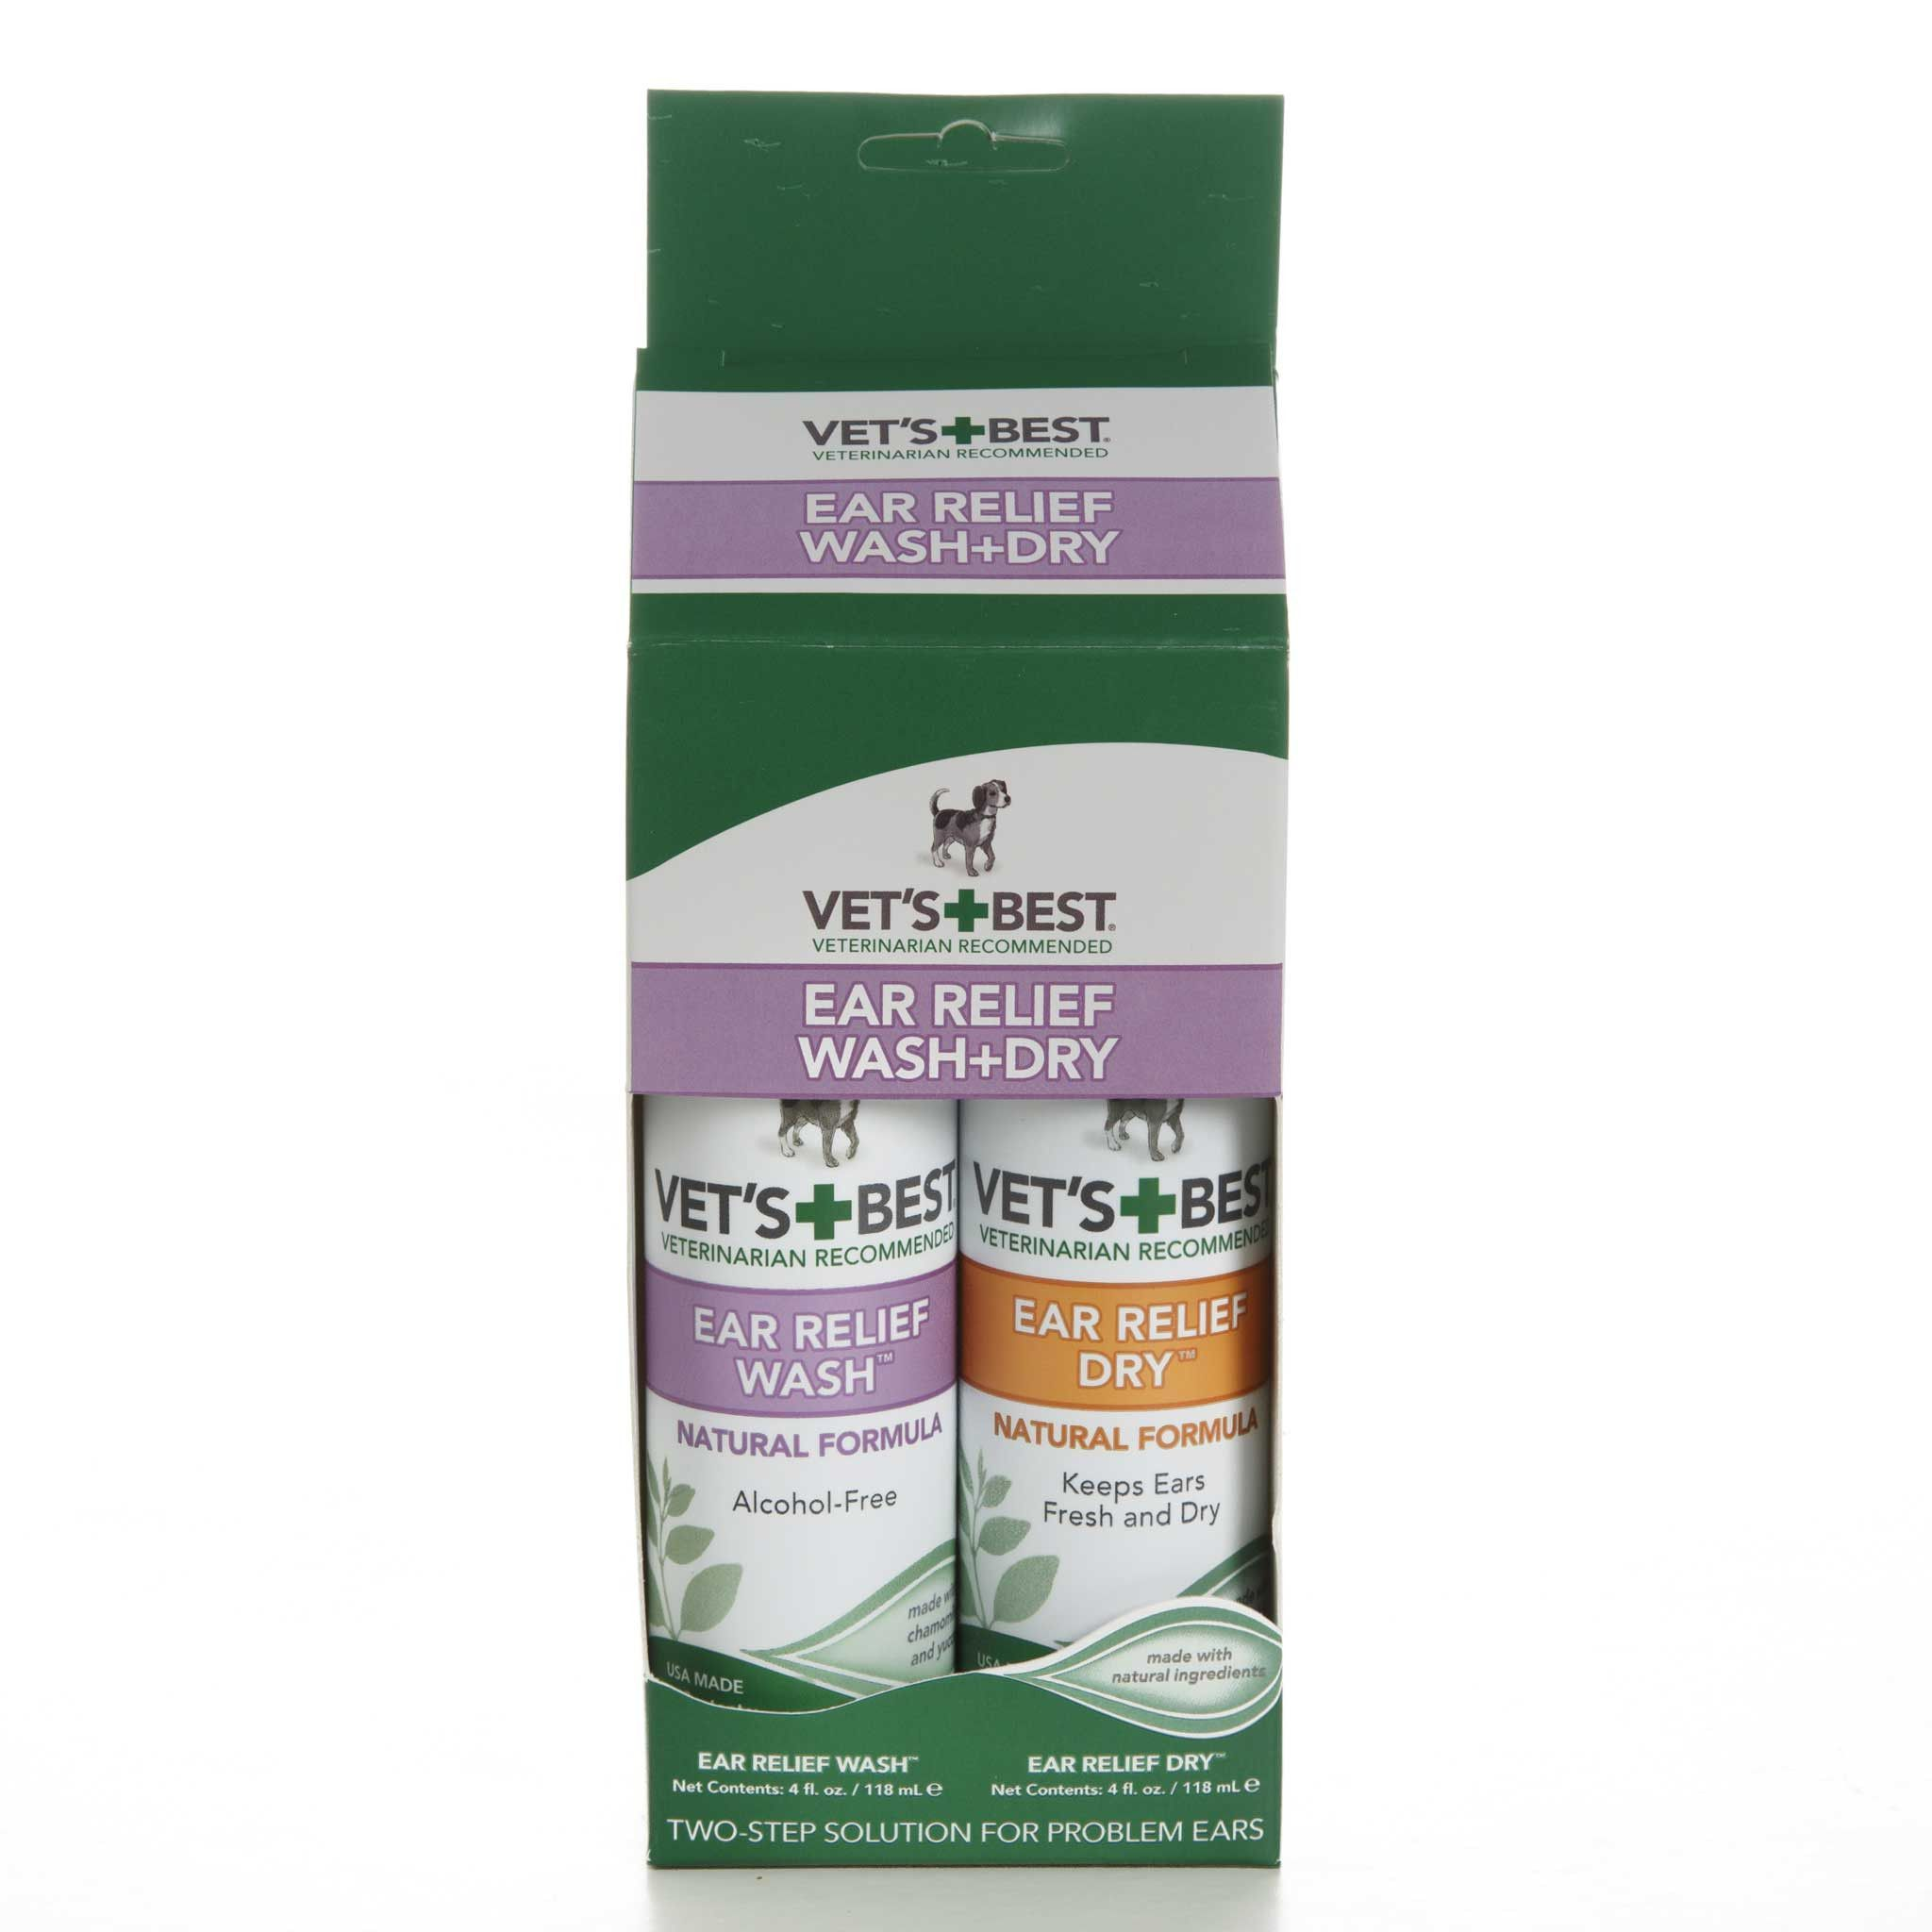 Vet's BestEar Relief Wash + Dry Cleaning dogs ears, Dog